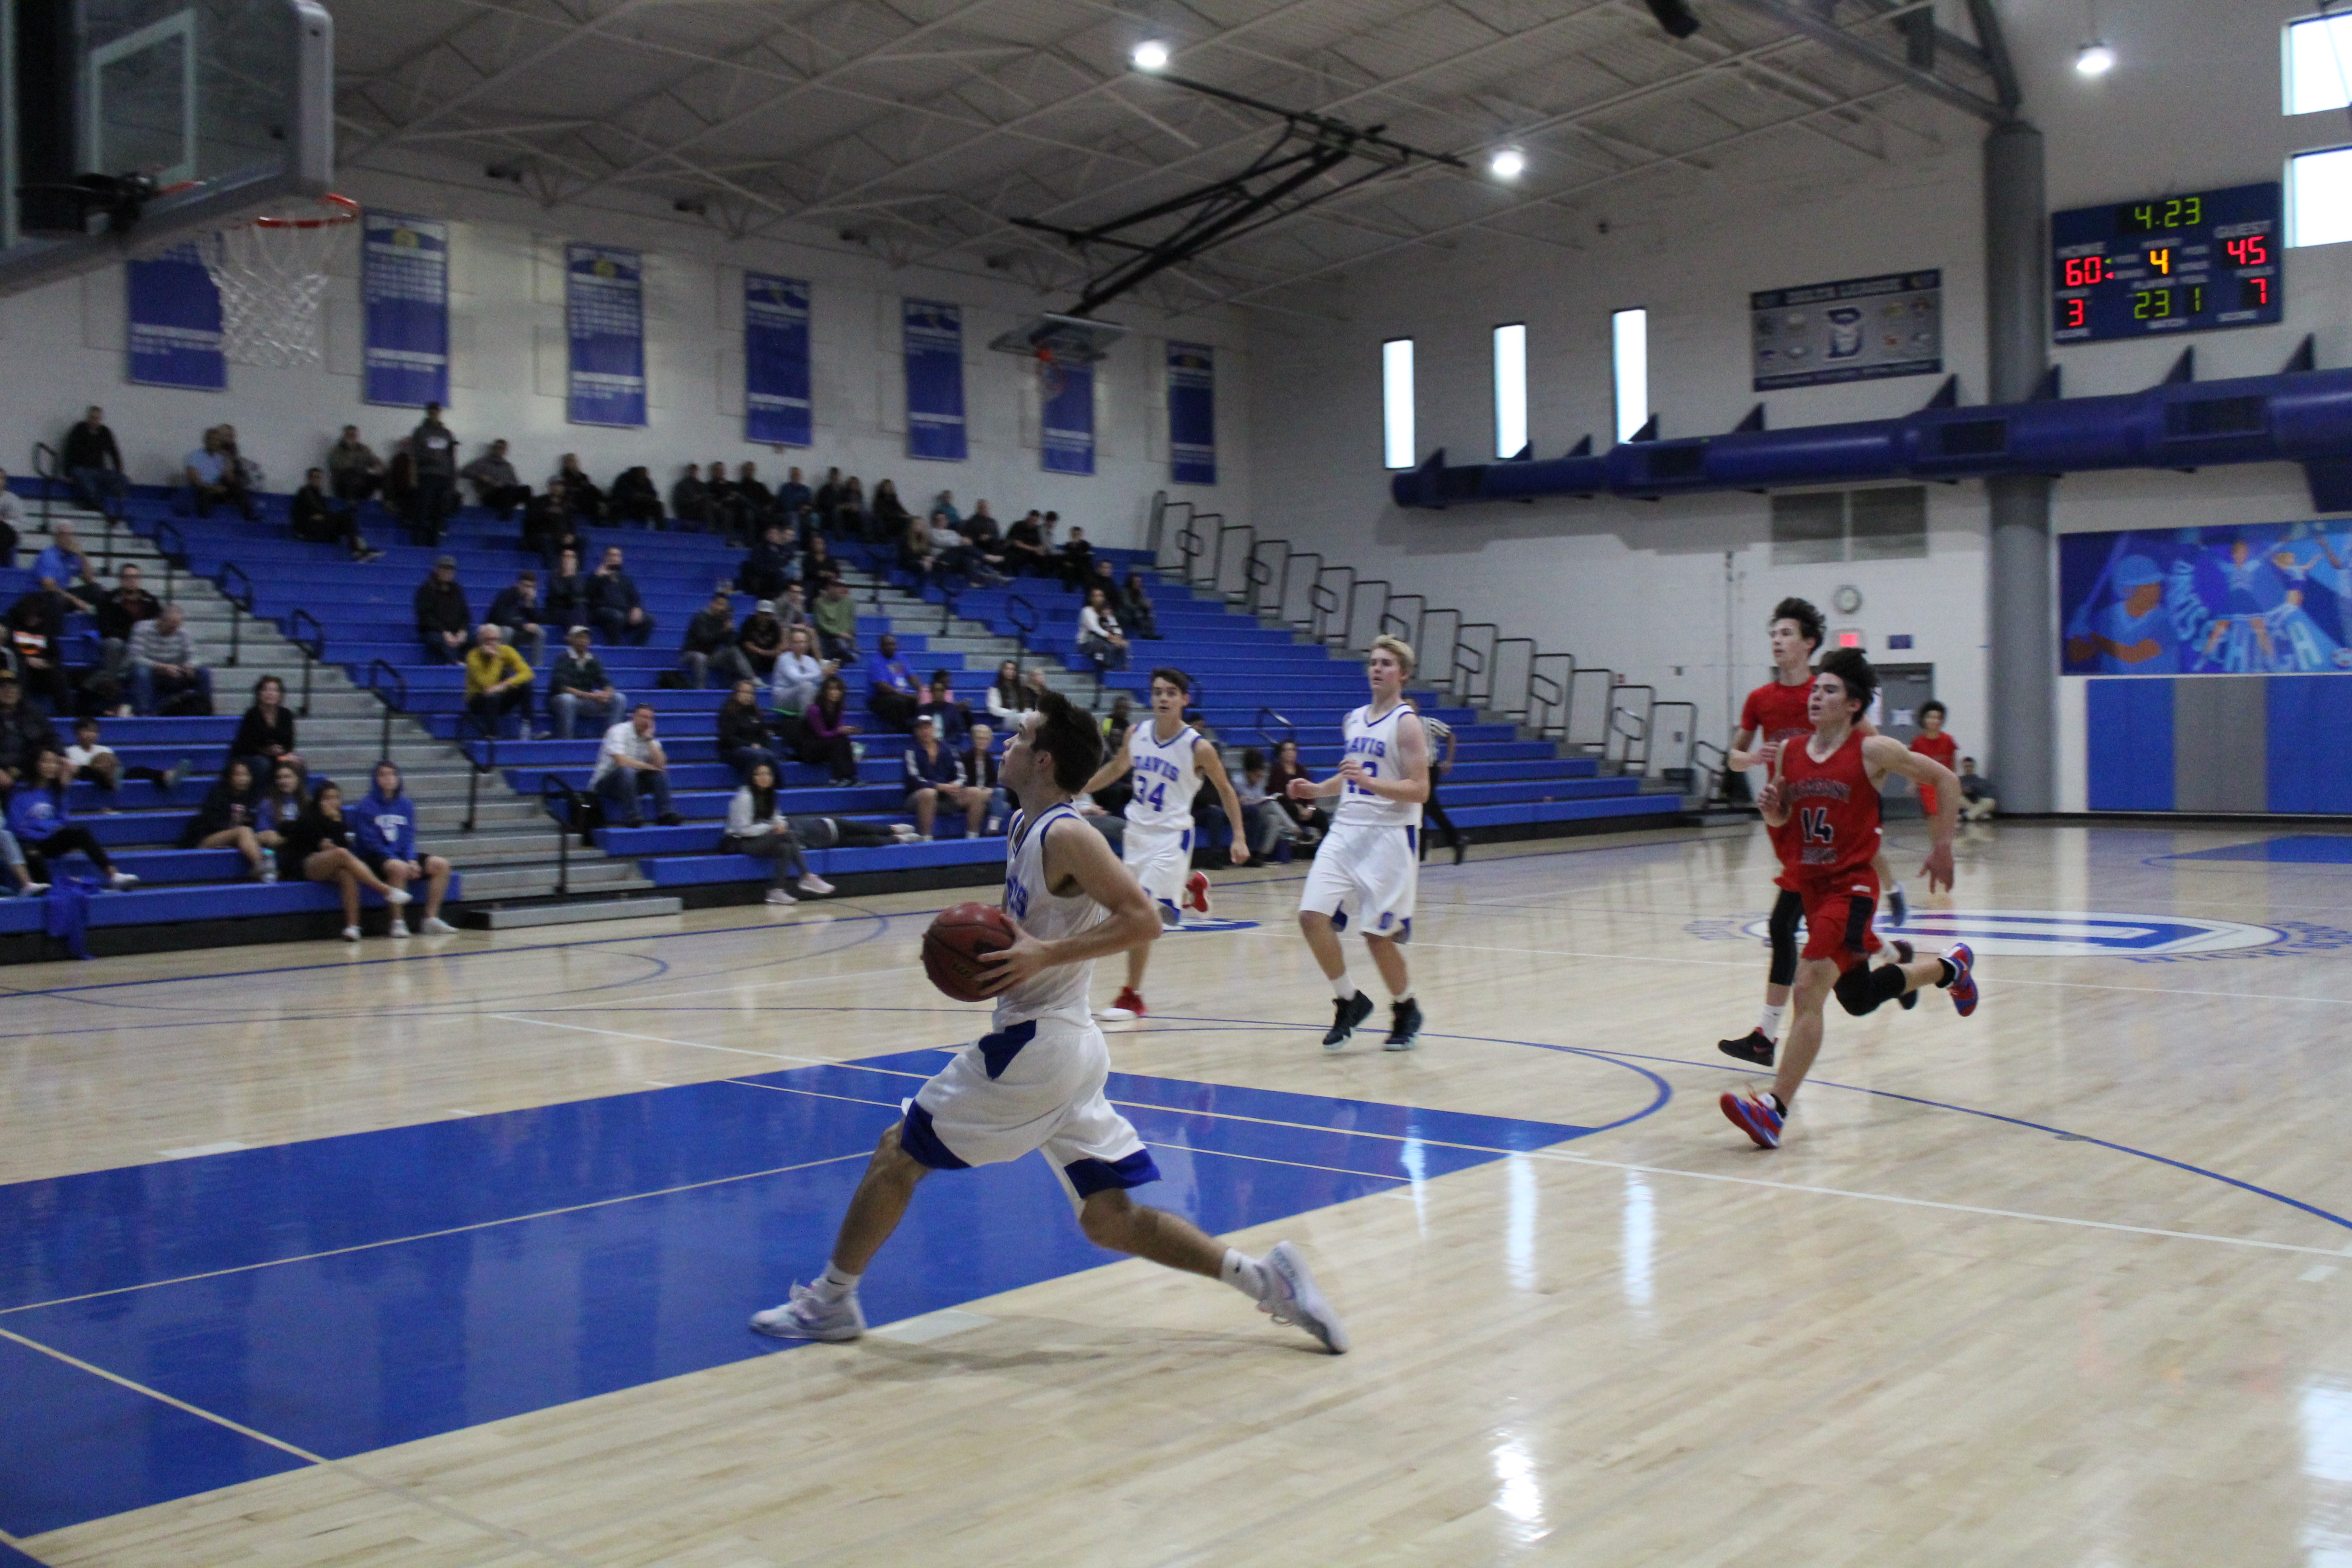 Junior Joey Voss strides toward the basket for two points.